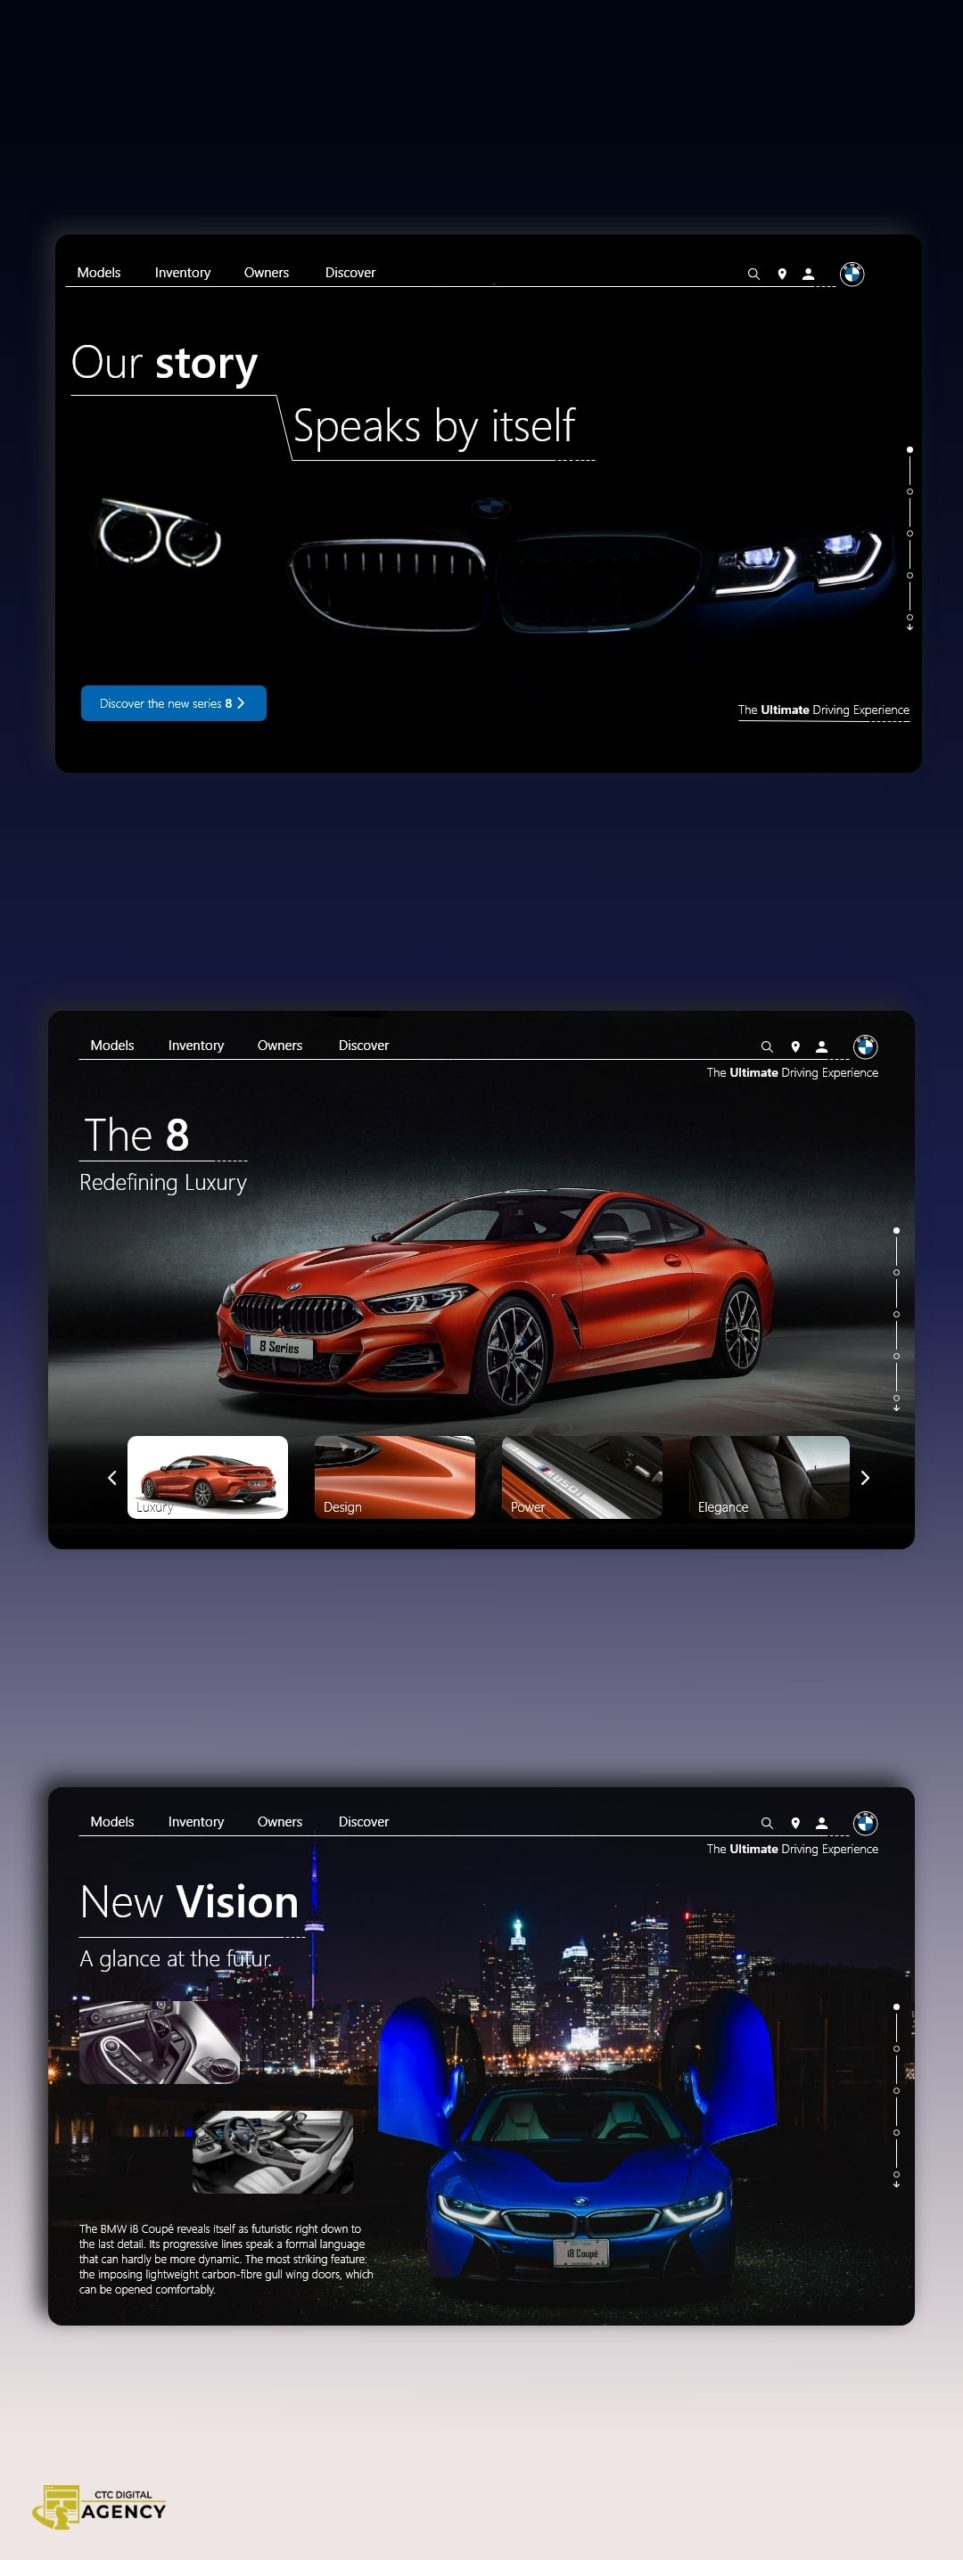 Conceptualisation for BMW by CTC Digital Agency